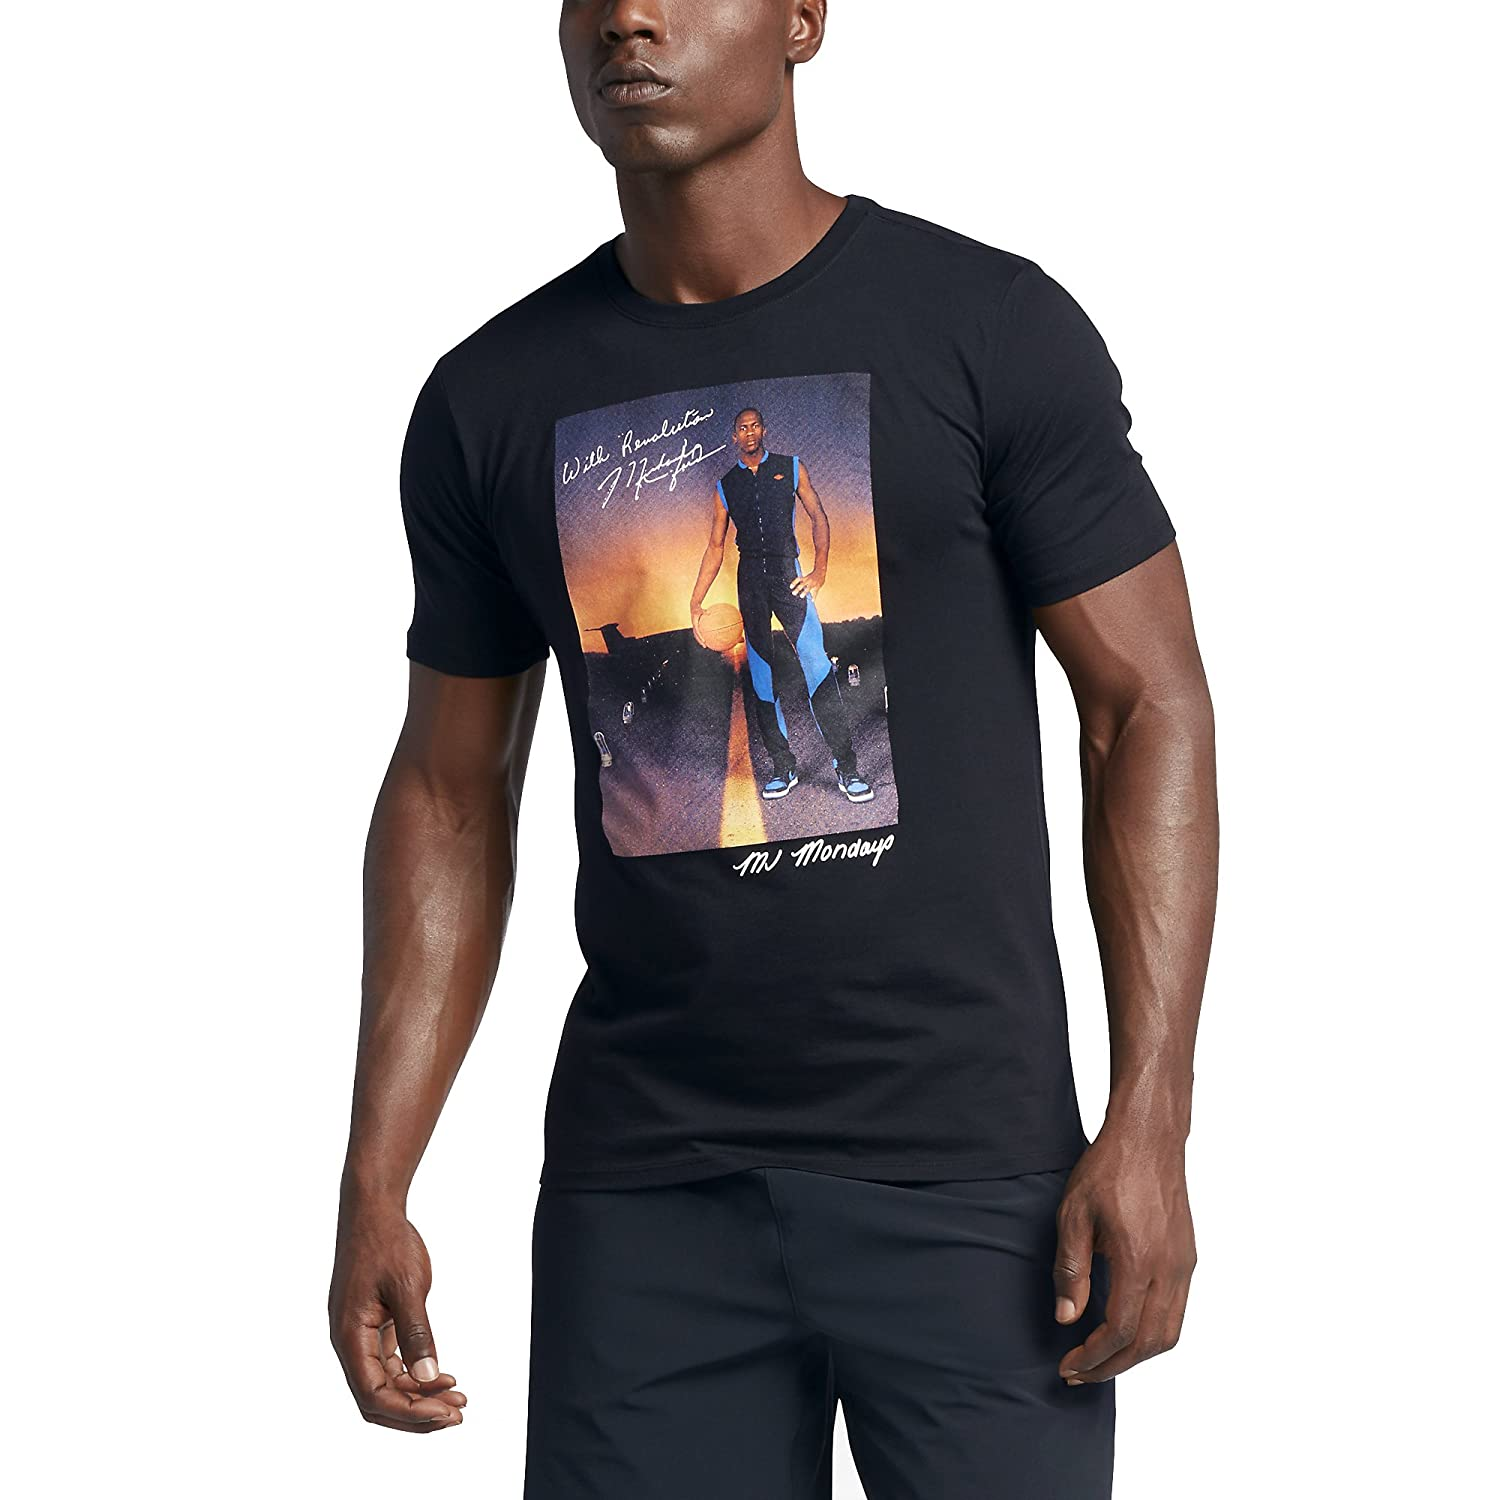 43e1a269d0a Jordan MJ MONDAY'S TEE mens workout-and-training-shirts 801603 at Amazon Men's  Clothing store: